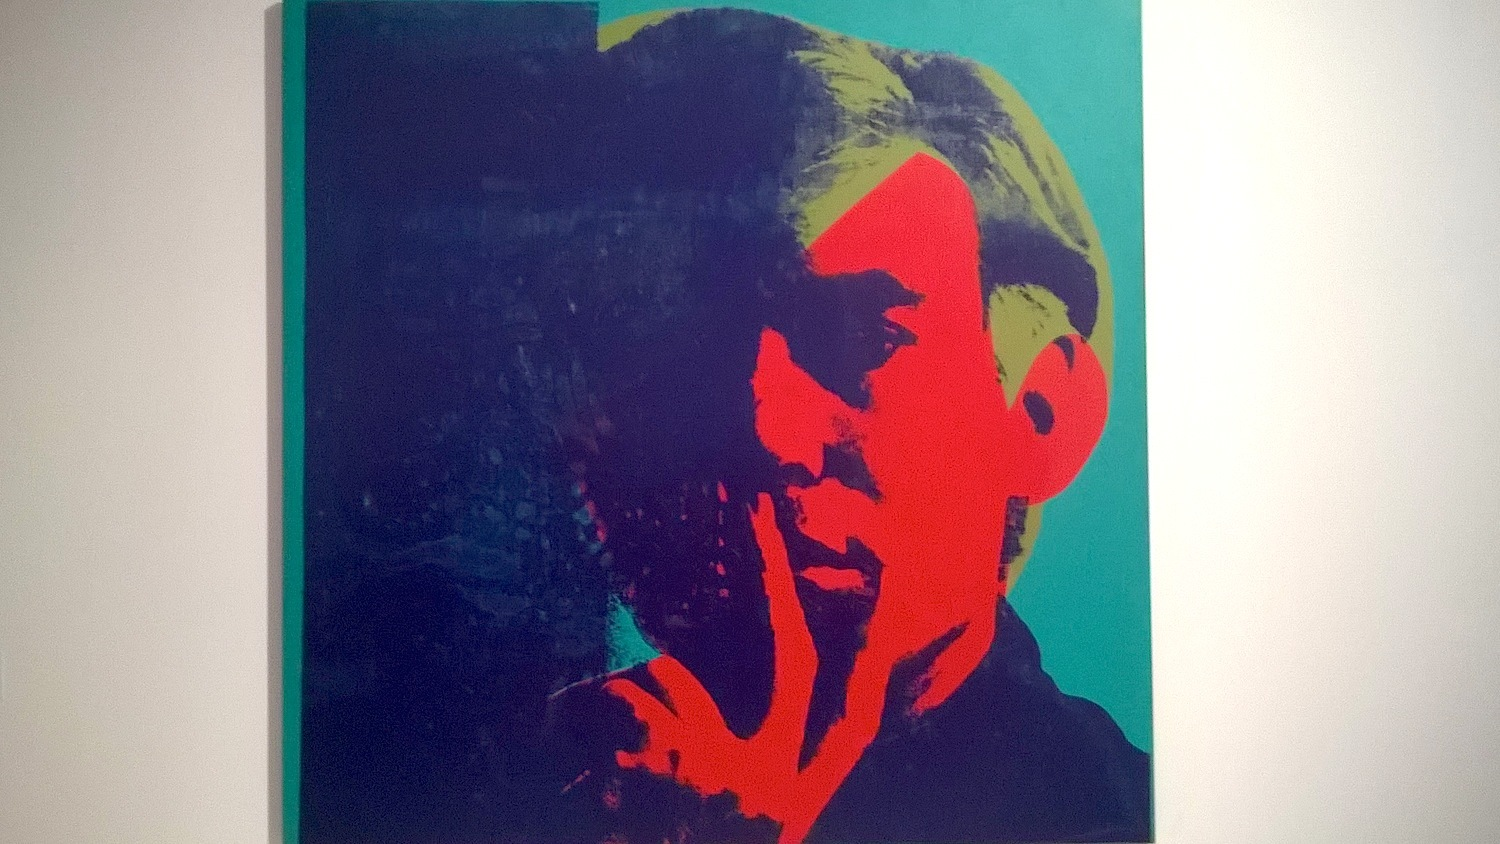 Pope of the pop • Warhol Unlimited